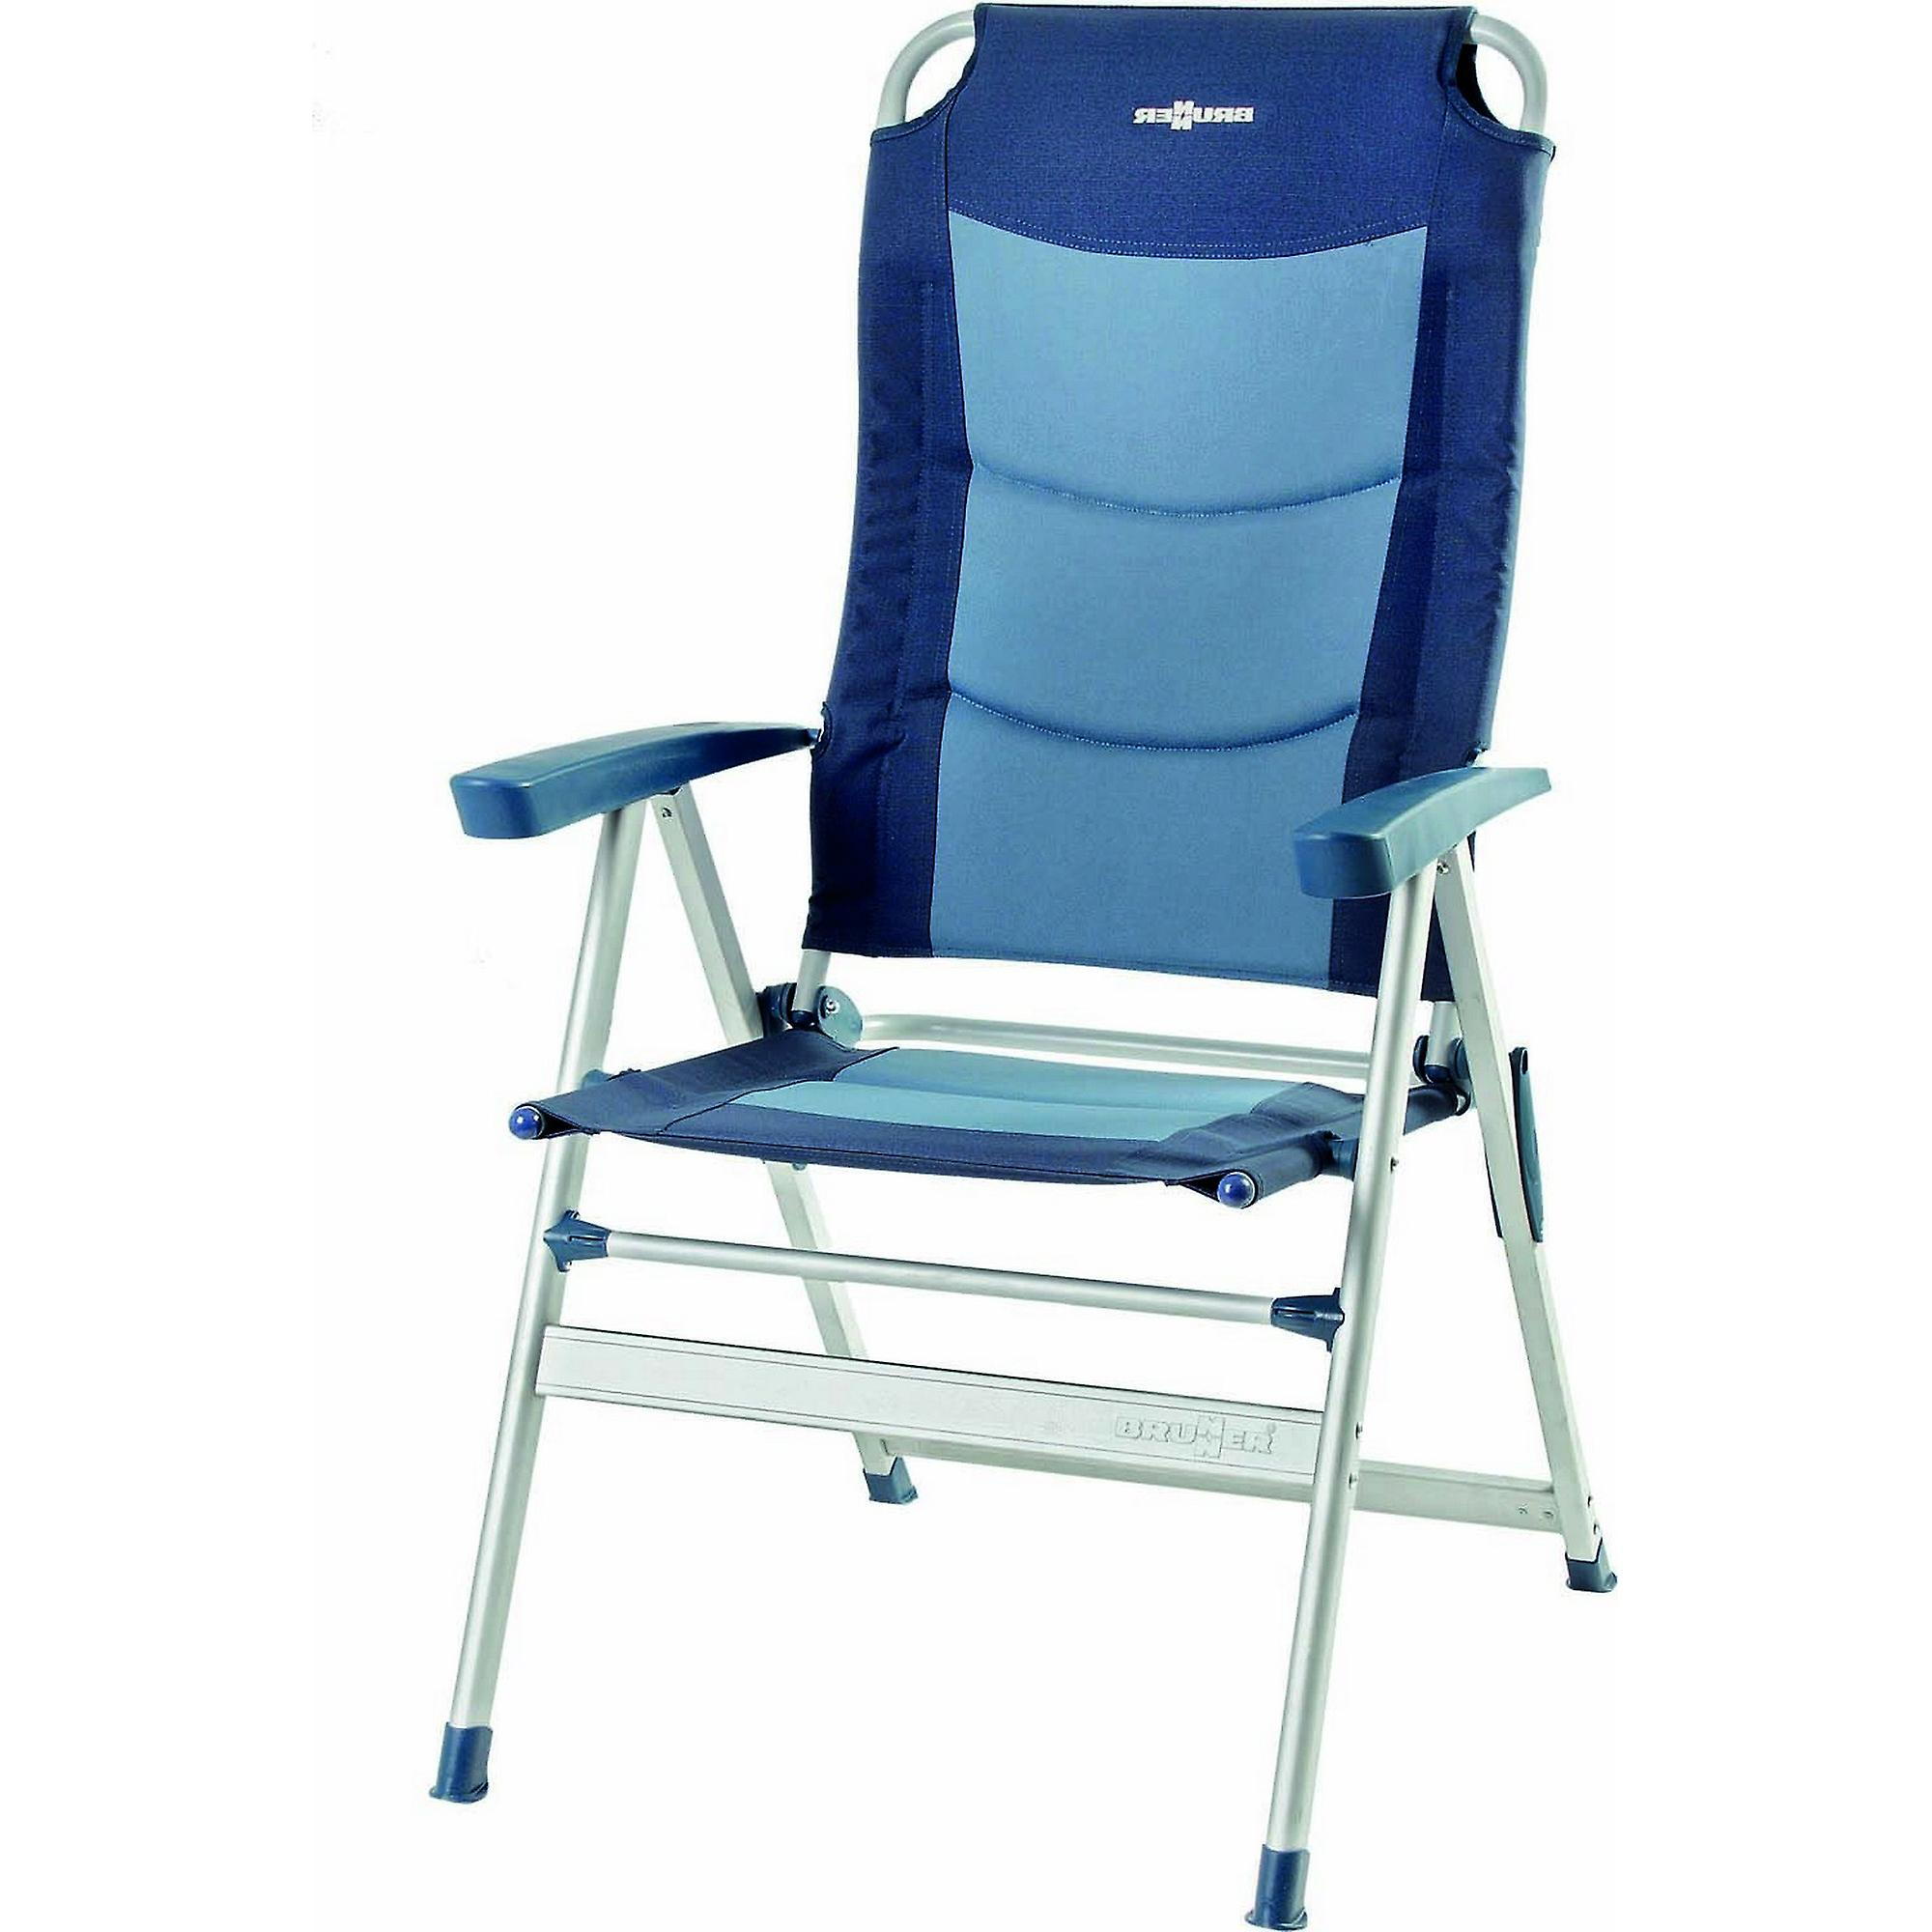 600 Inclinable Aluminium Brunner Camping Kerry Slim Fauteuil b6vIfgymY7